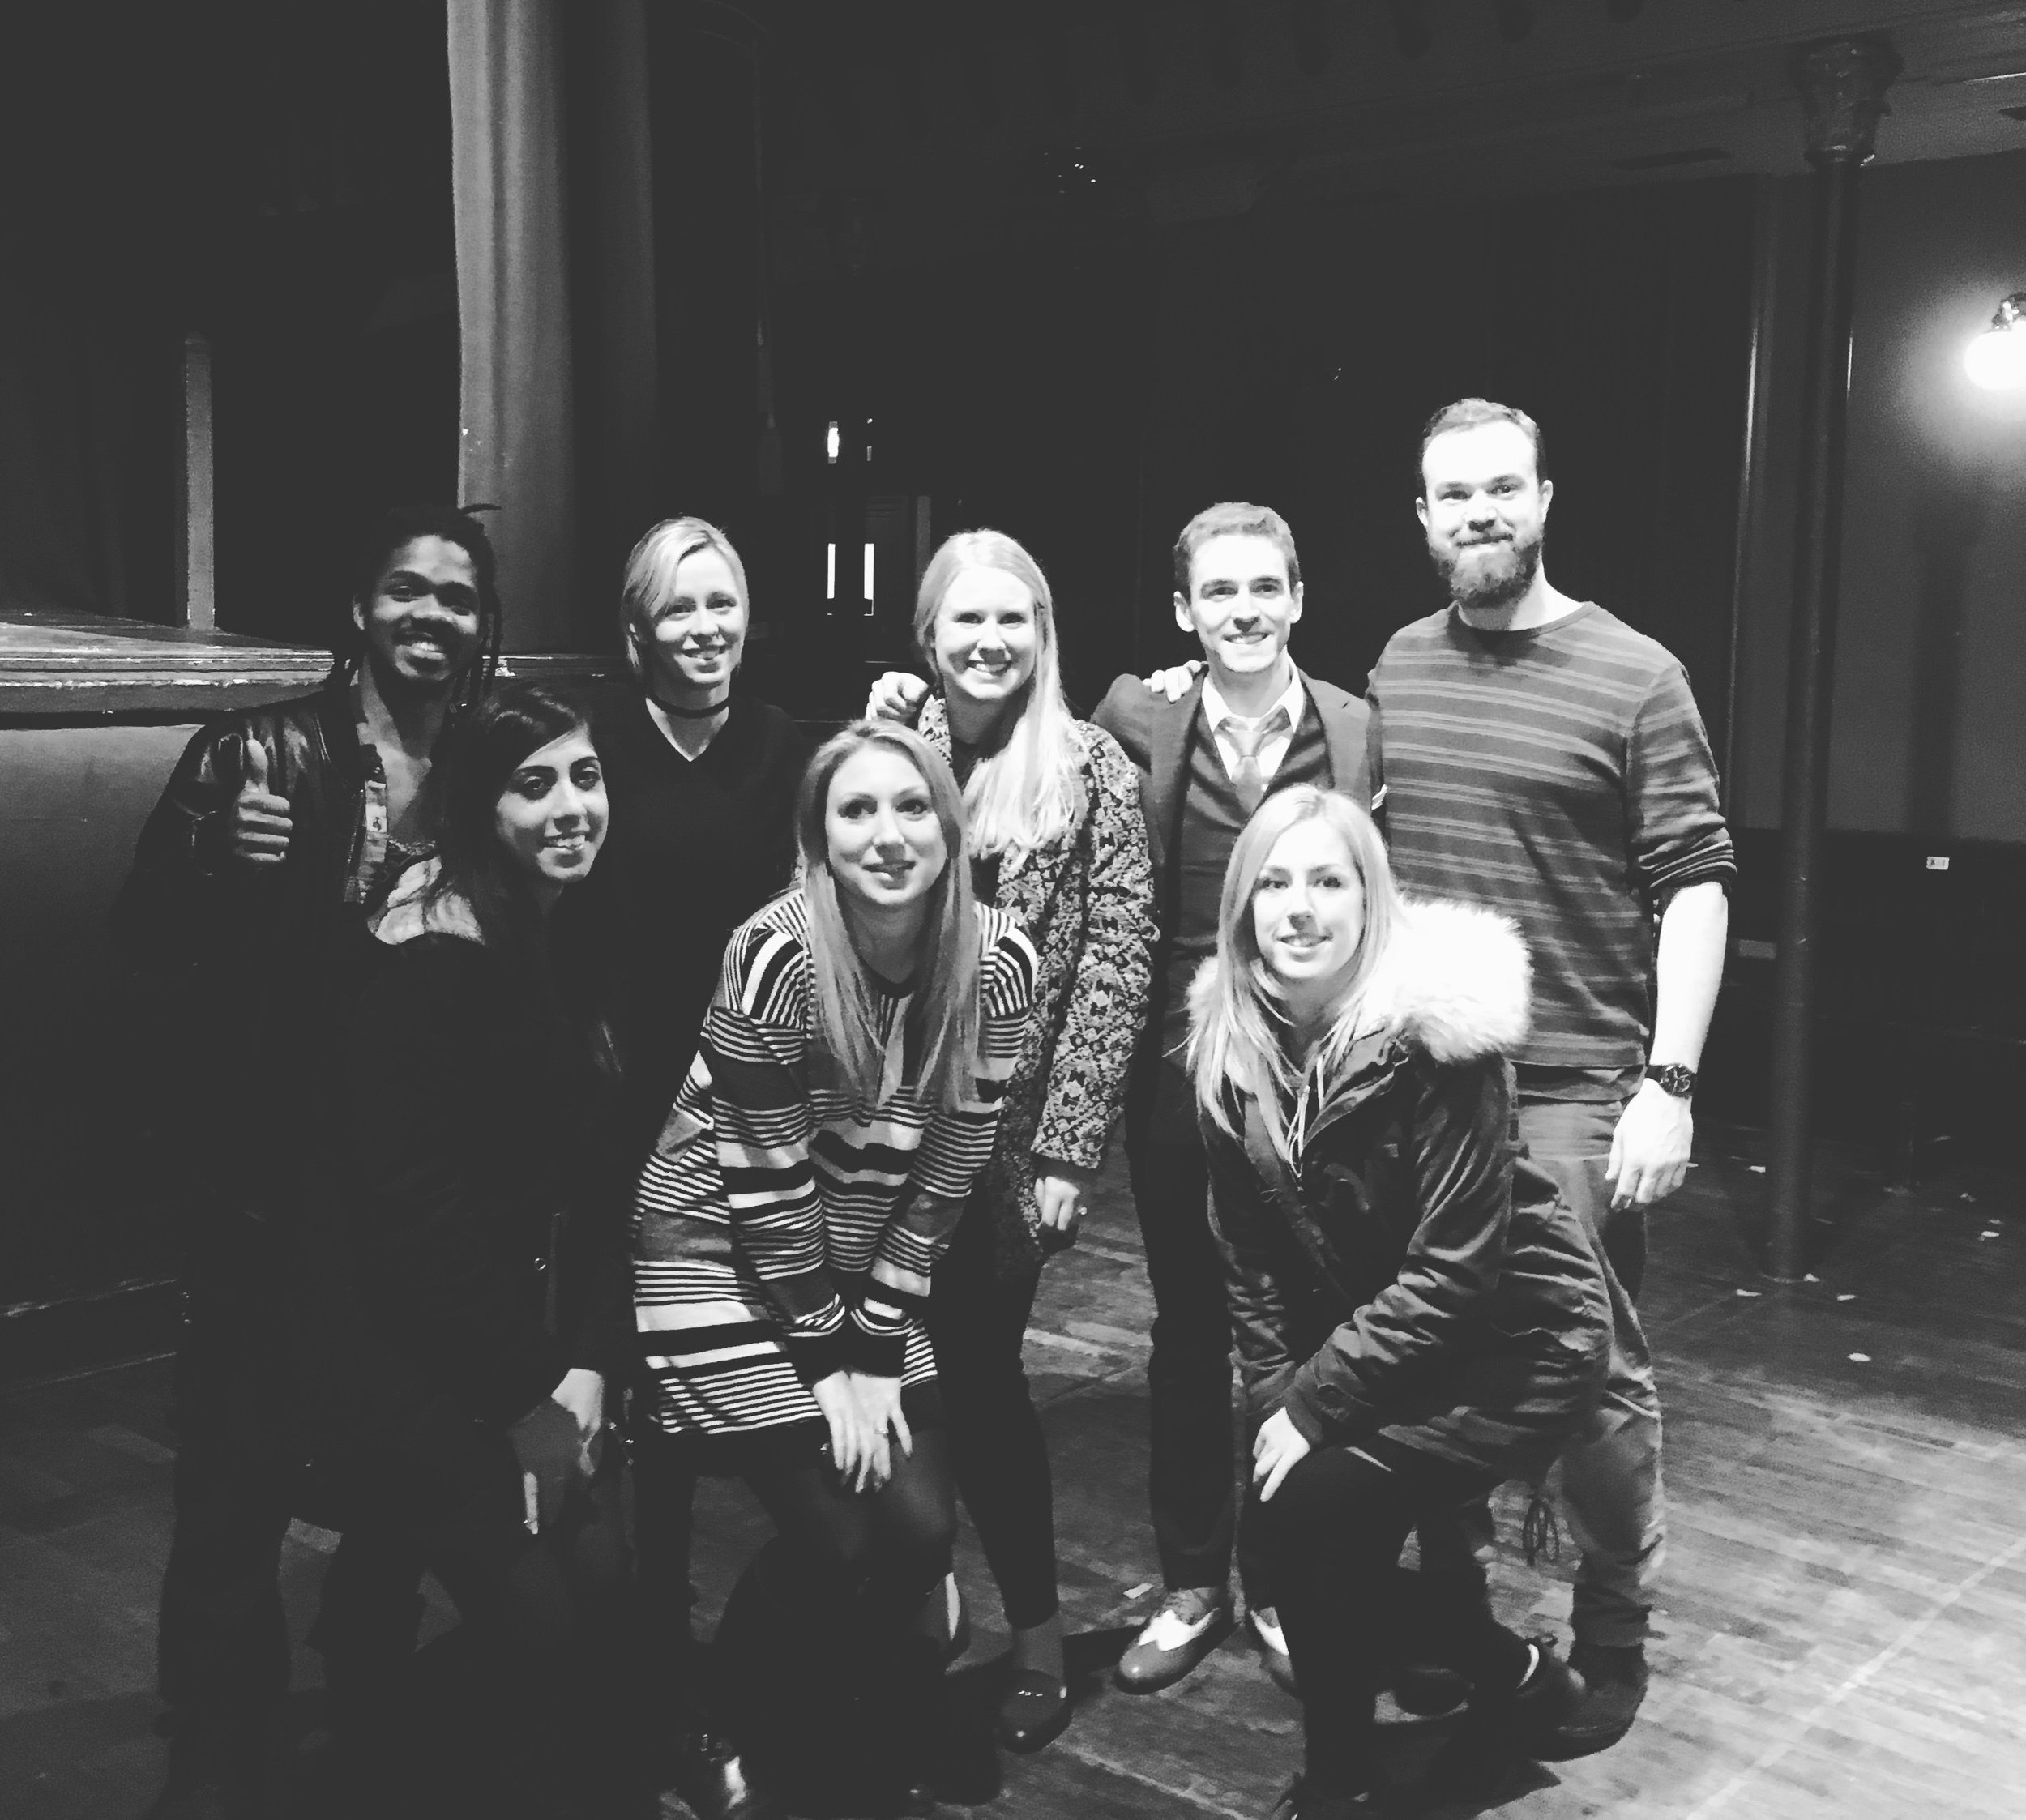 Myself, Patrick, Daisy, Sam and the Proposer's and Hoxton's theatre team after the show